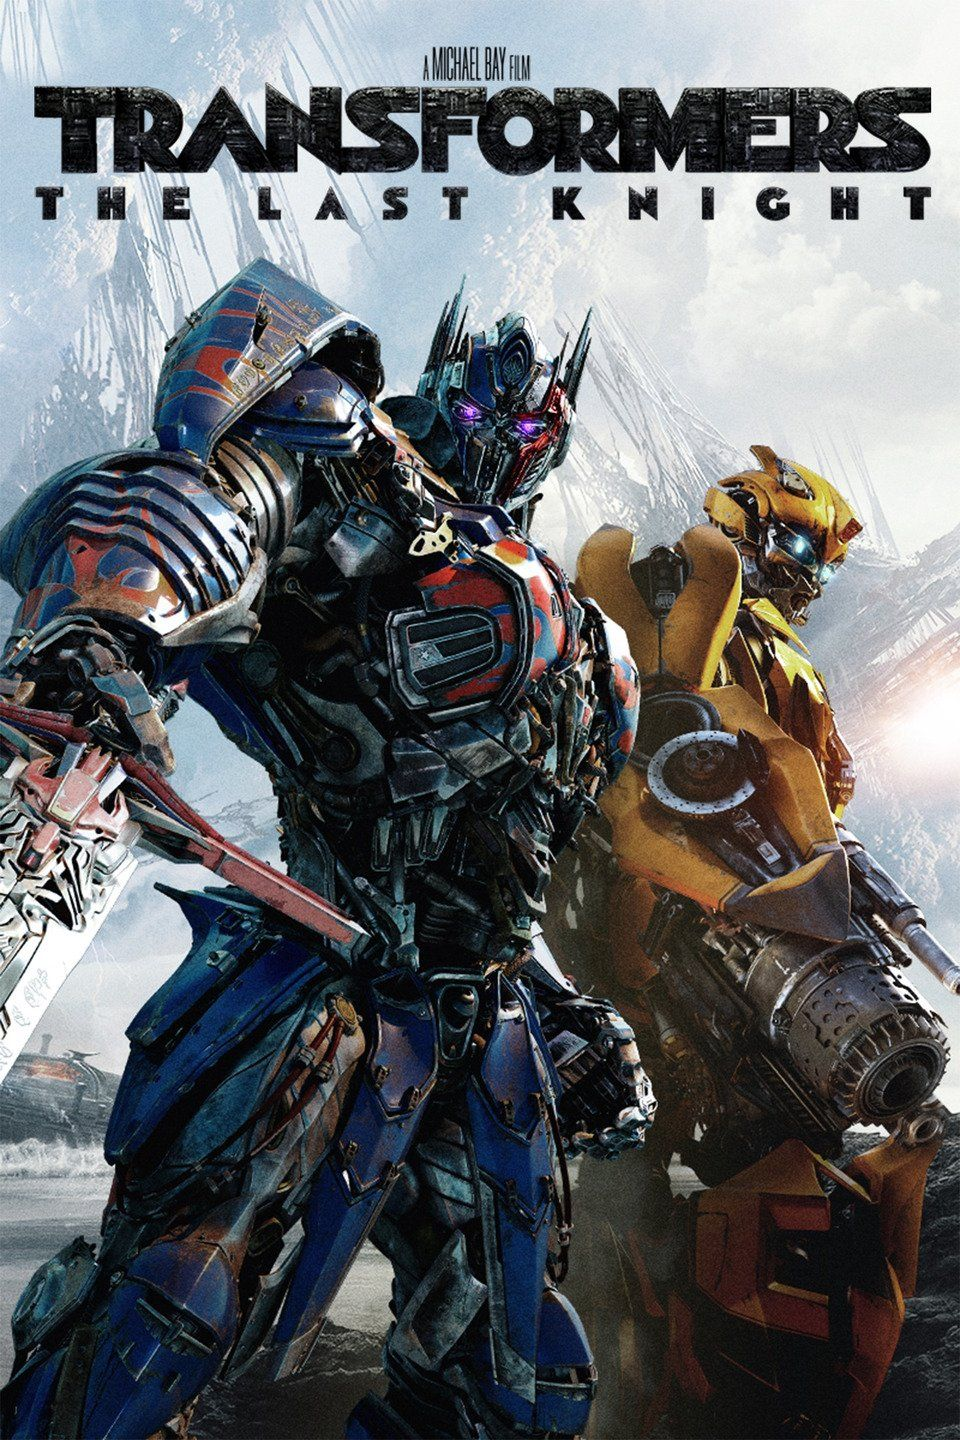 Transformer | Last knights, Transformers movie, Transformers